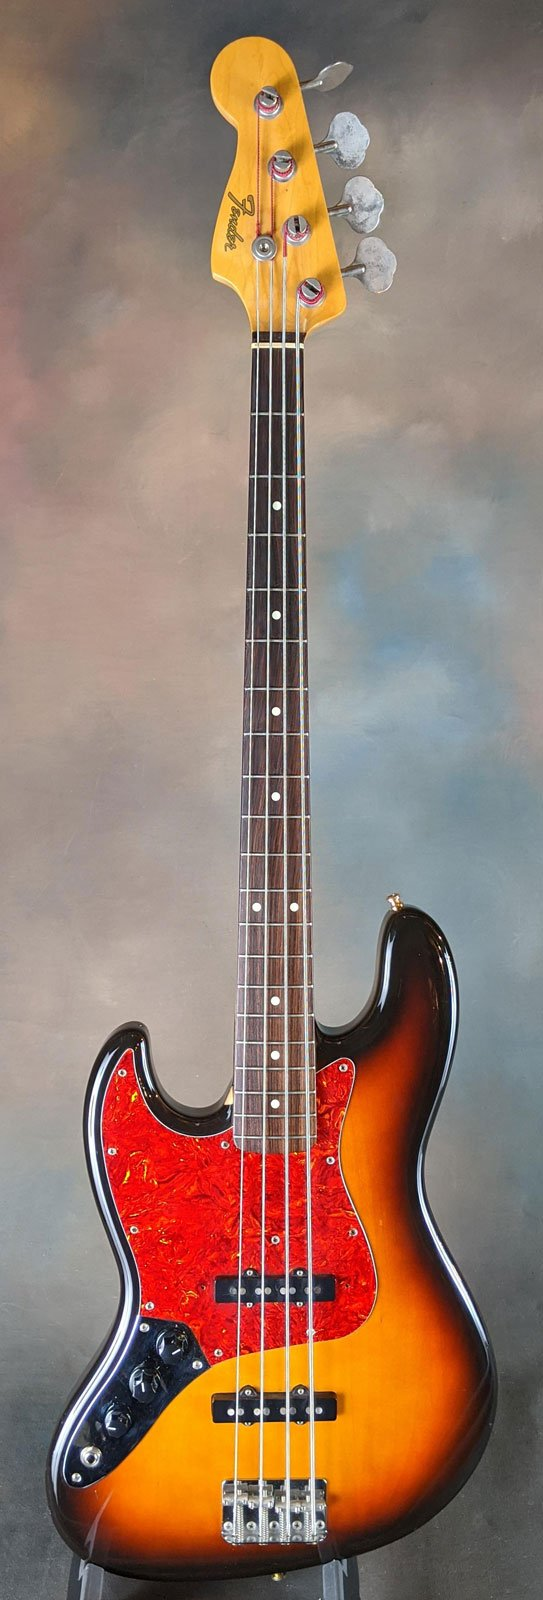 1990 Fender MIJ Left-handed '62 Jazz Bass reissue